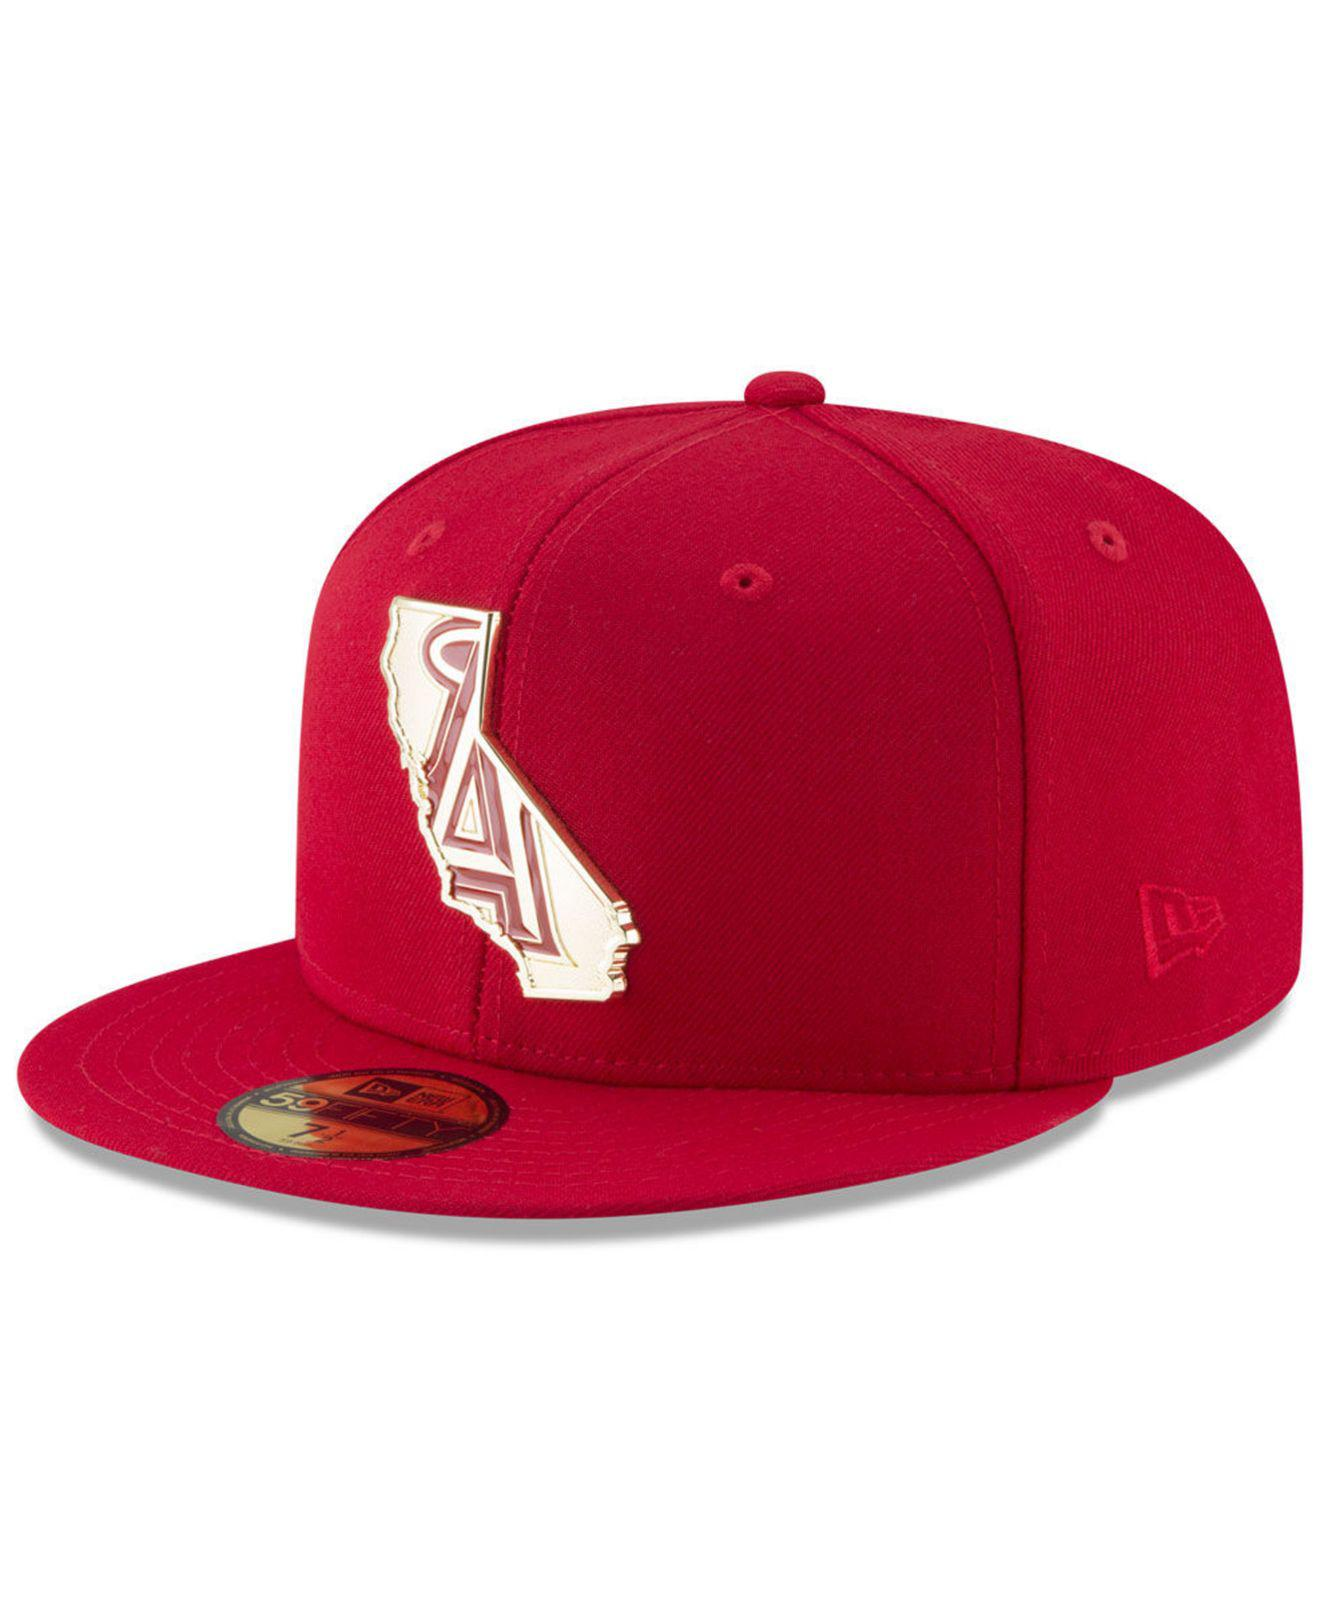 cheap for discount fbb04 2a850 ... new era mlb golden finish 59fifty cap d3aed 1089e  coupon code for ktz.  mens red los angeles angels gold stated 59fifty fitted cap cff77